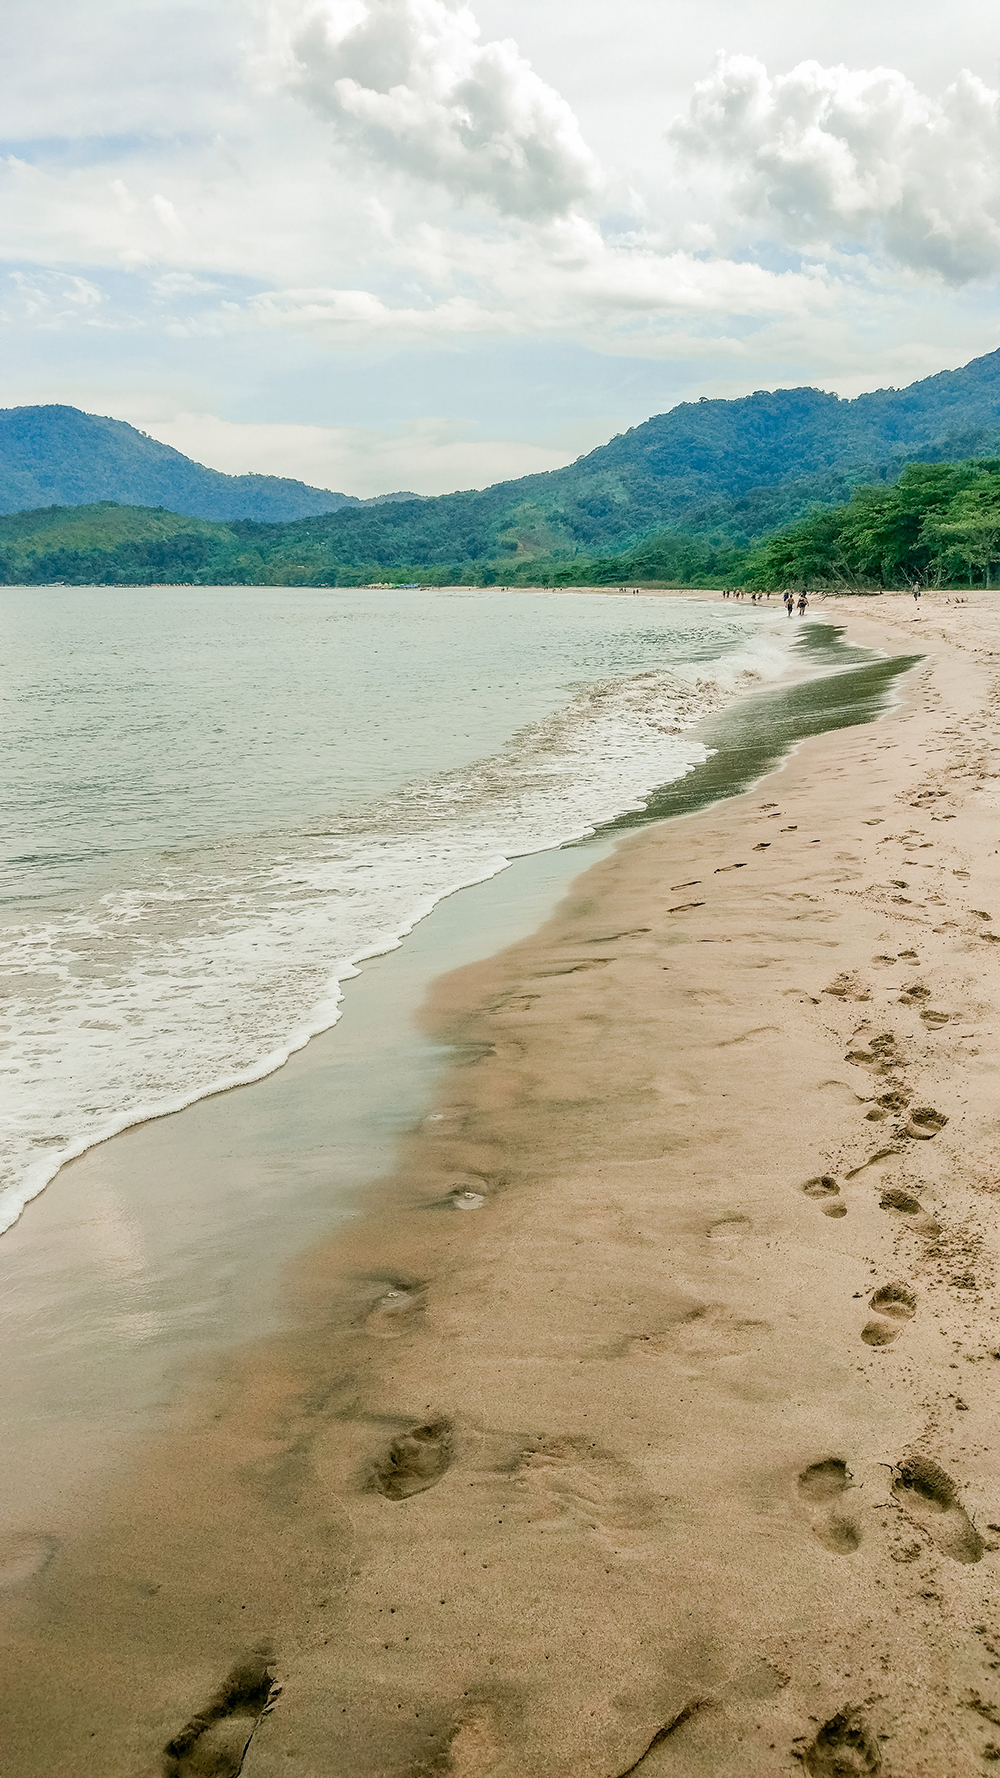 Praia de Castelhanos - Ilhabela travel guide - what to do and where to go | Aliz's Wonderland